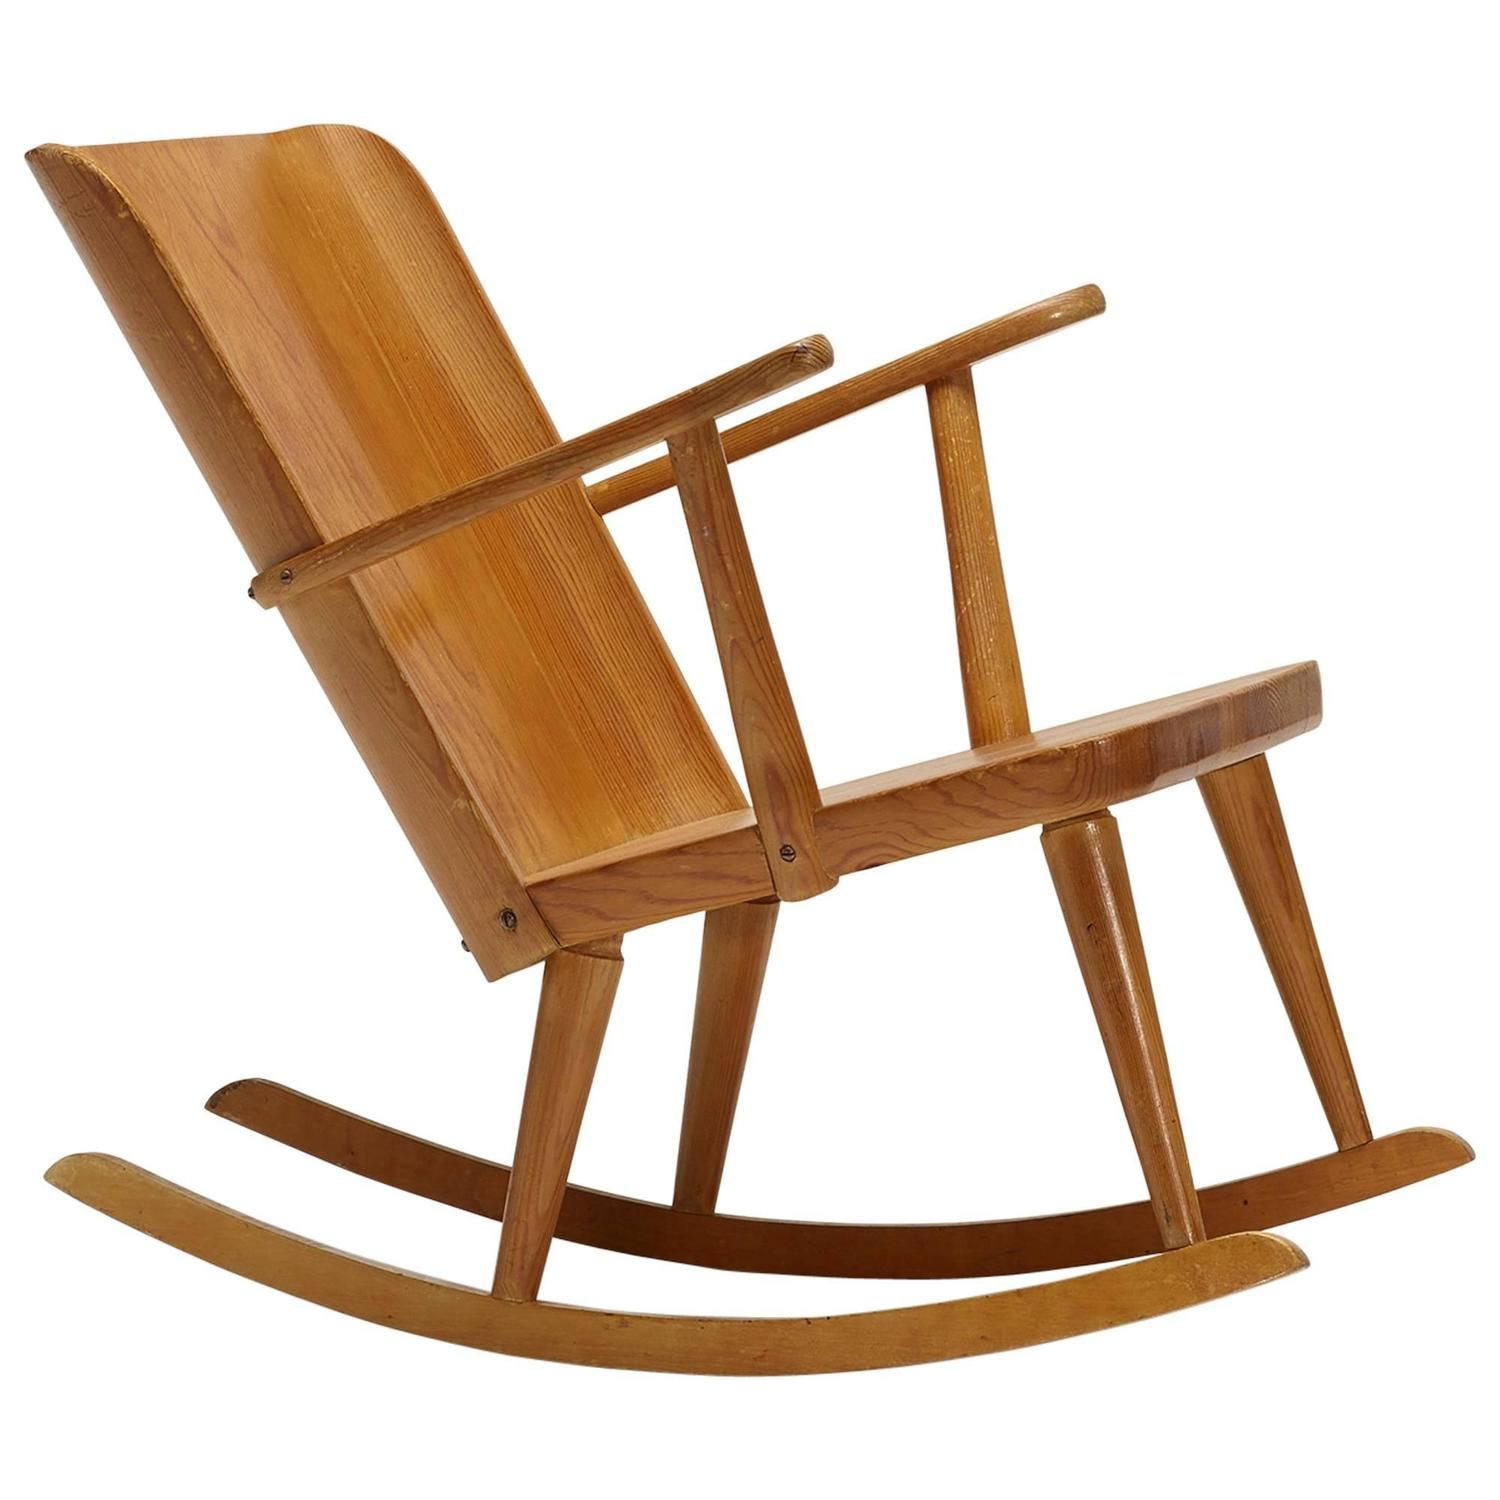 Pine Rocking Chair by Carl Malmsten - Pine Rocking Chair By Carl Malmsten Rocking Chairs, Pine And Modern